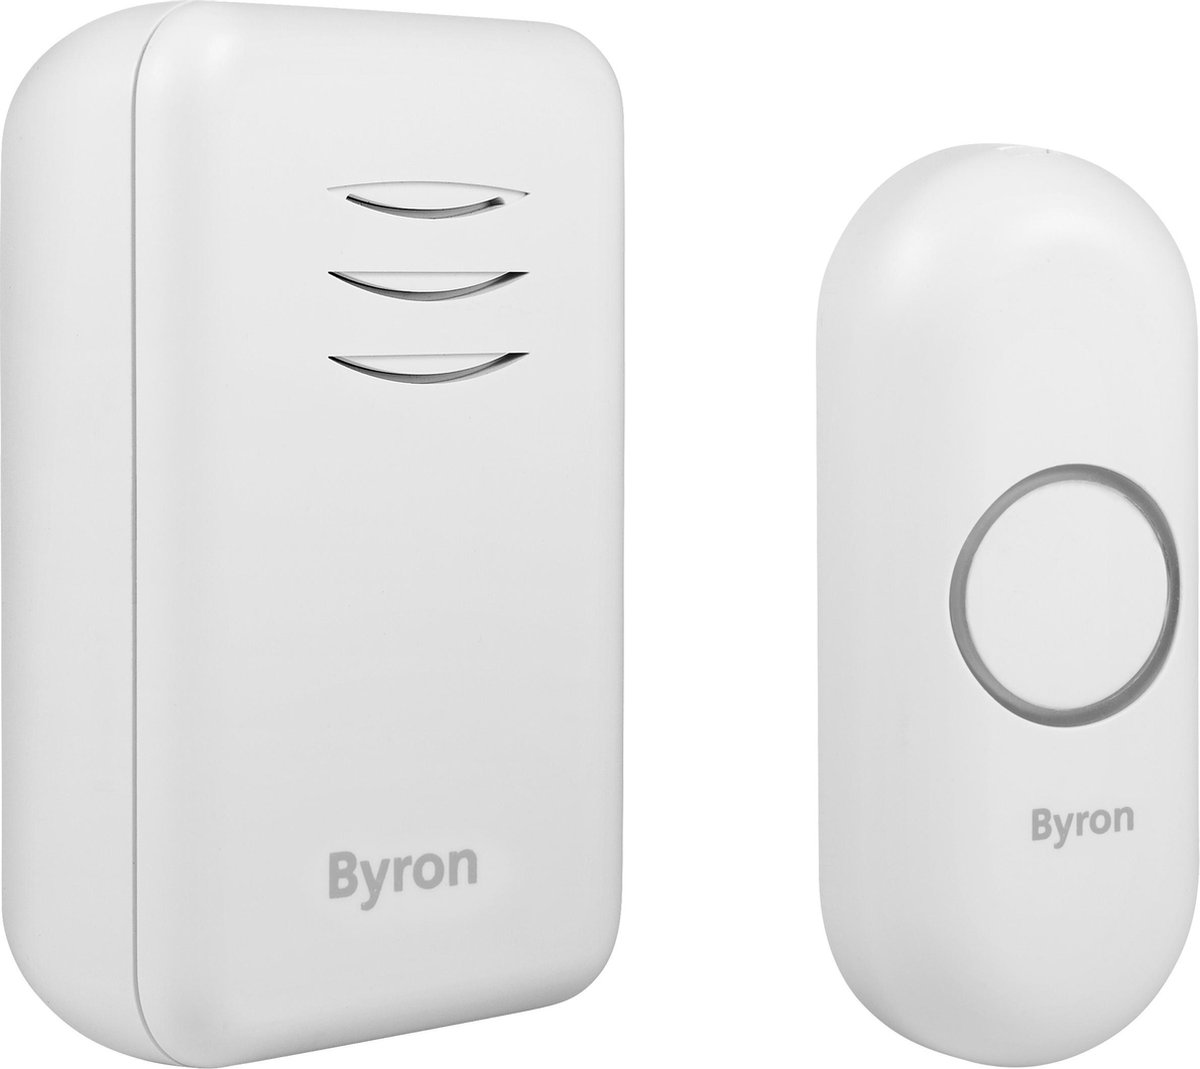 Byron gong - type DBY-22311 - port - draadloos - 150 m - wit